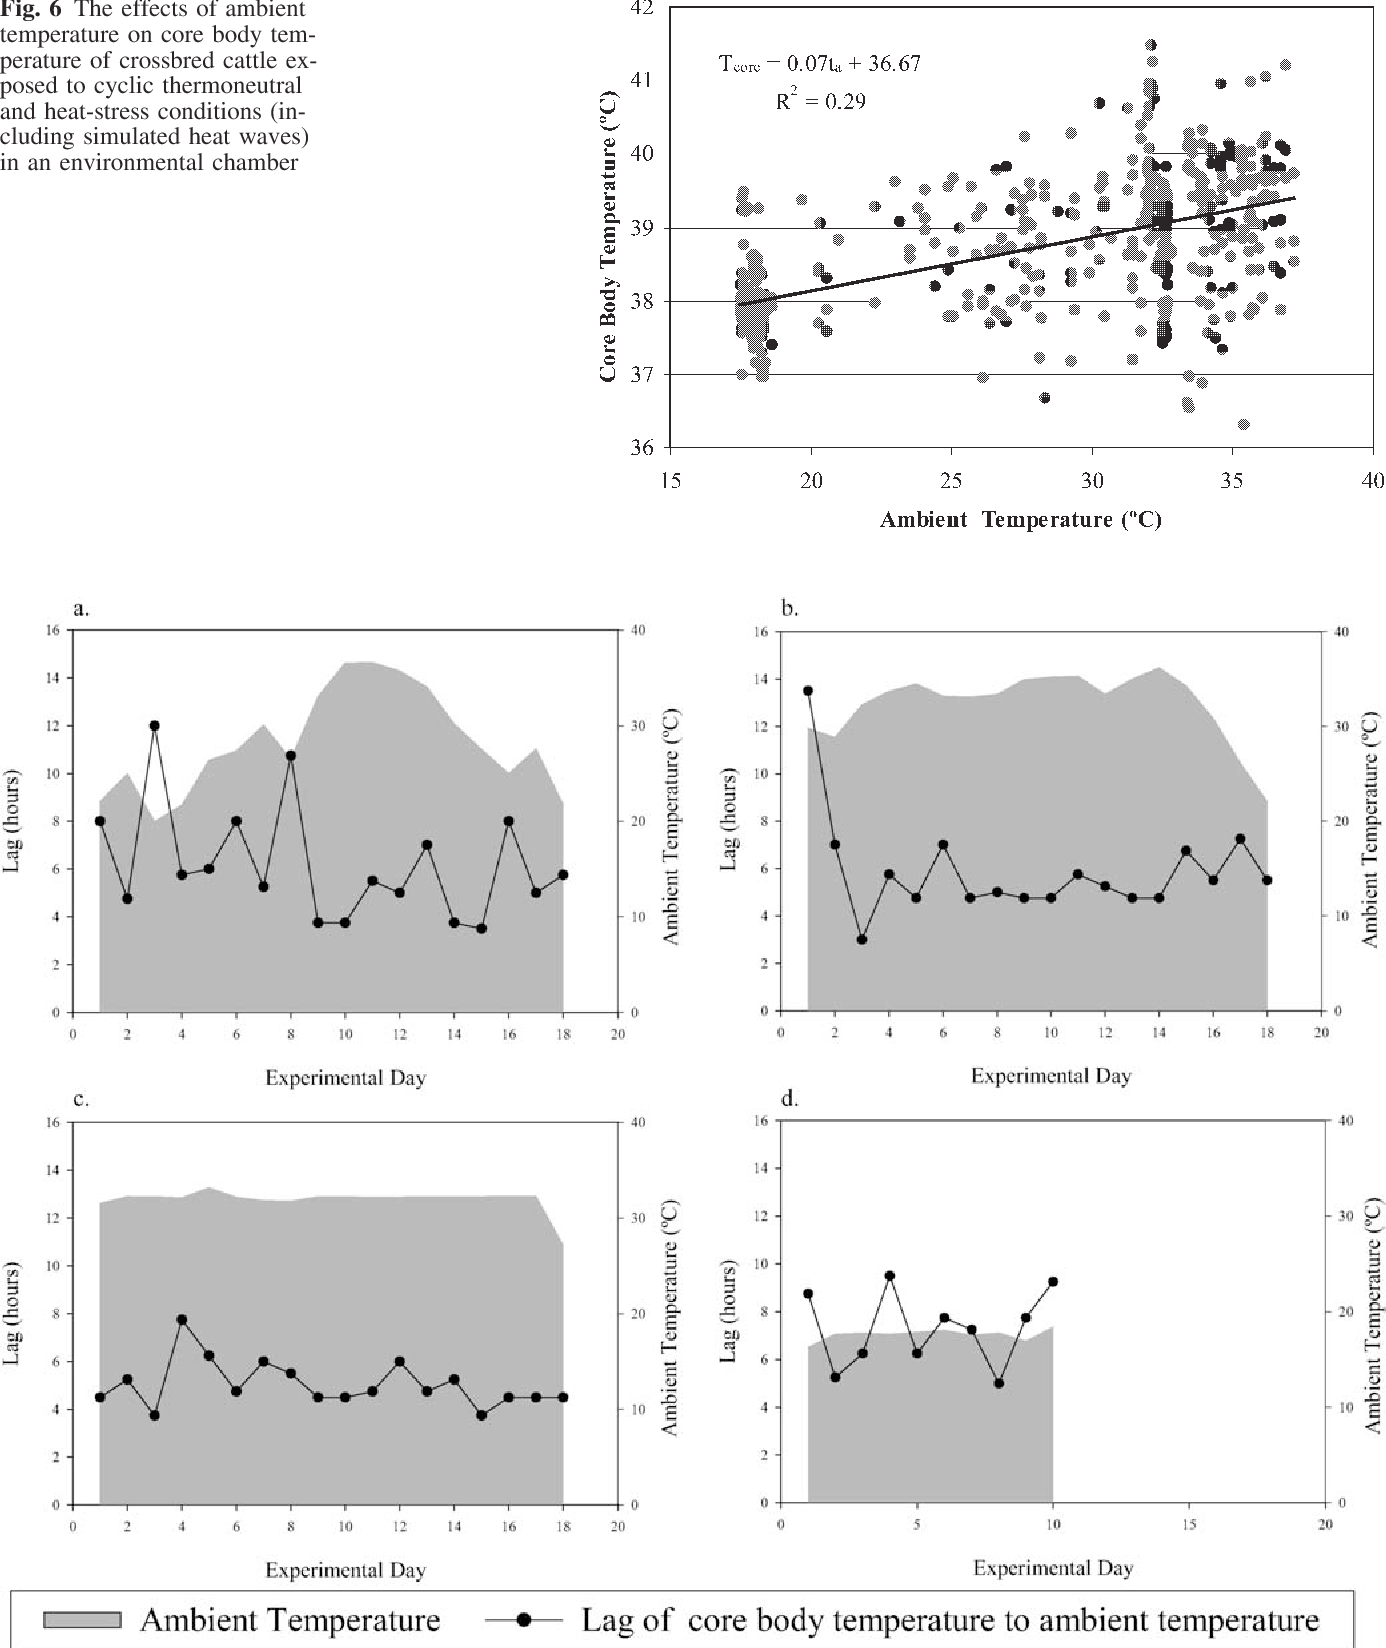 Fig. 6 The effects of ambient temperature on core body temperature of crossbred cattle exposed to cyclic thermoneutral and heat-stress conditions (including simulated heat waves) in an environmental chamber